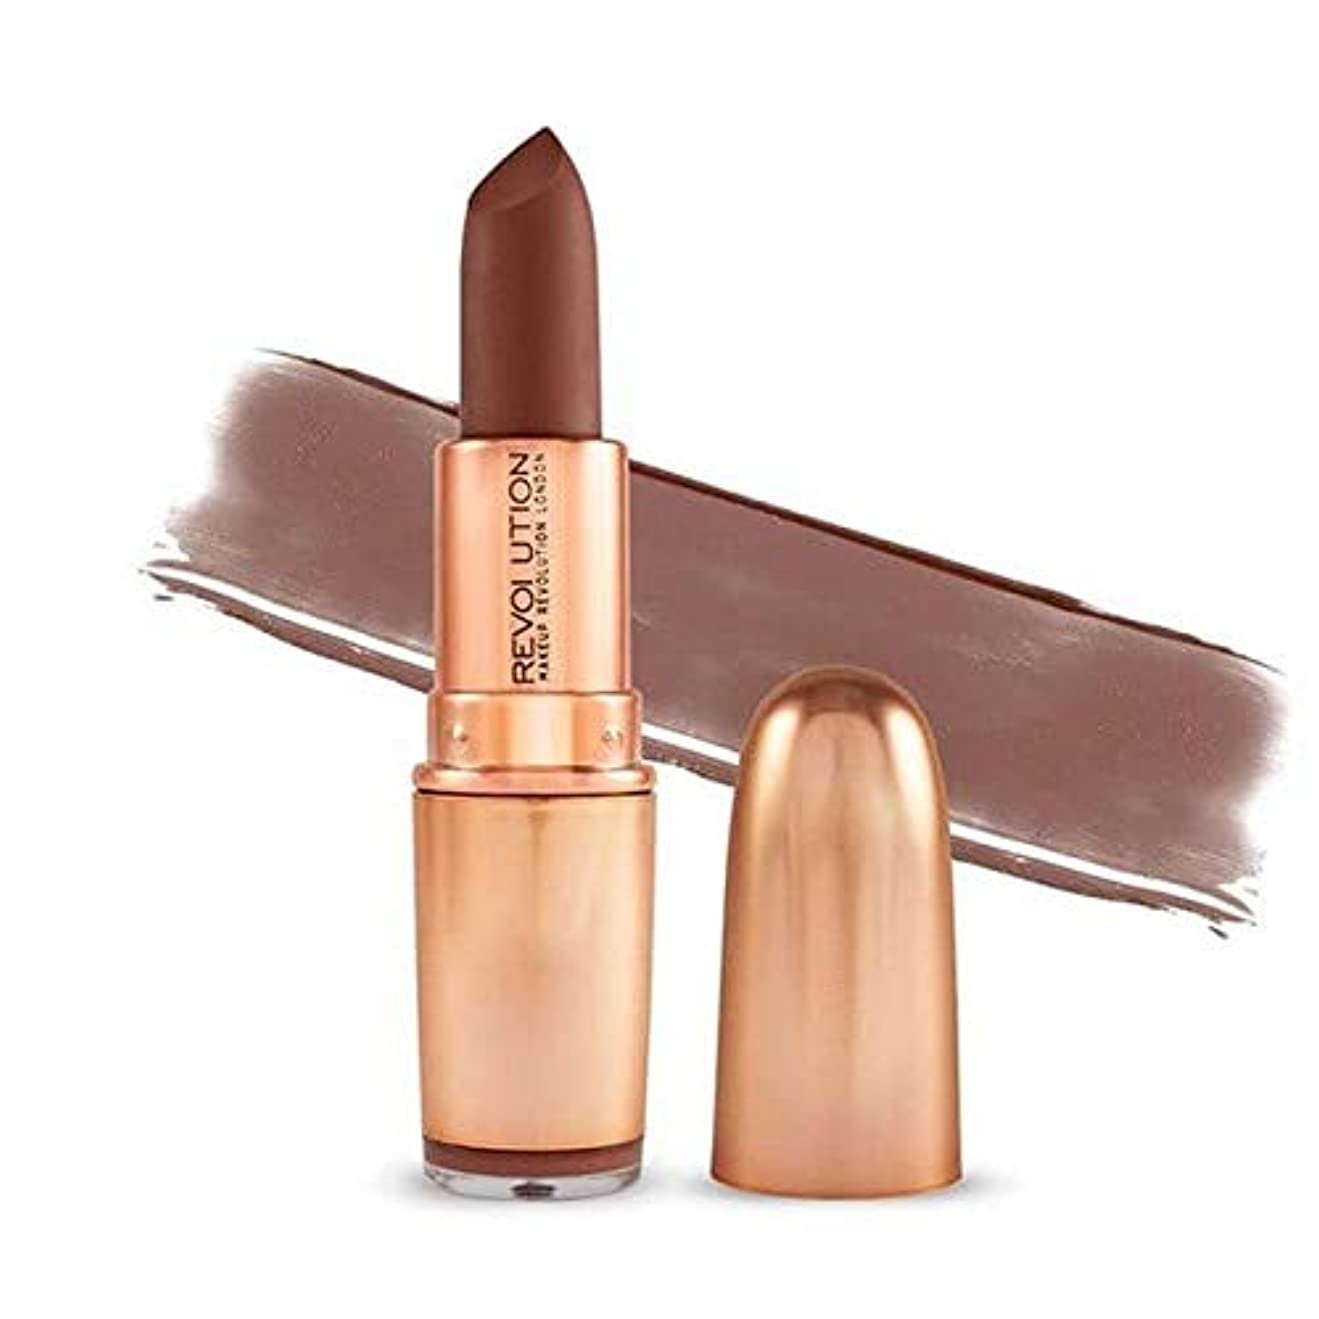 [Revolution ] 革命の象徴的なマットヌード口紅Inclanation - Revolution Iconic Matte Nude Lipstick Inclanation [並行輸入品]